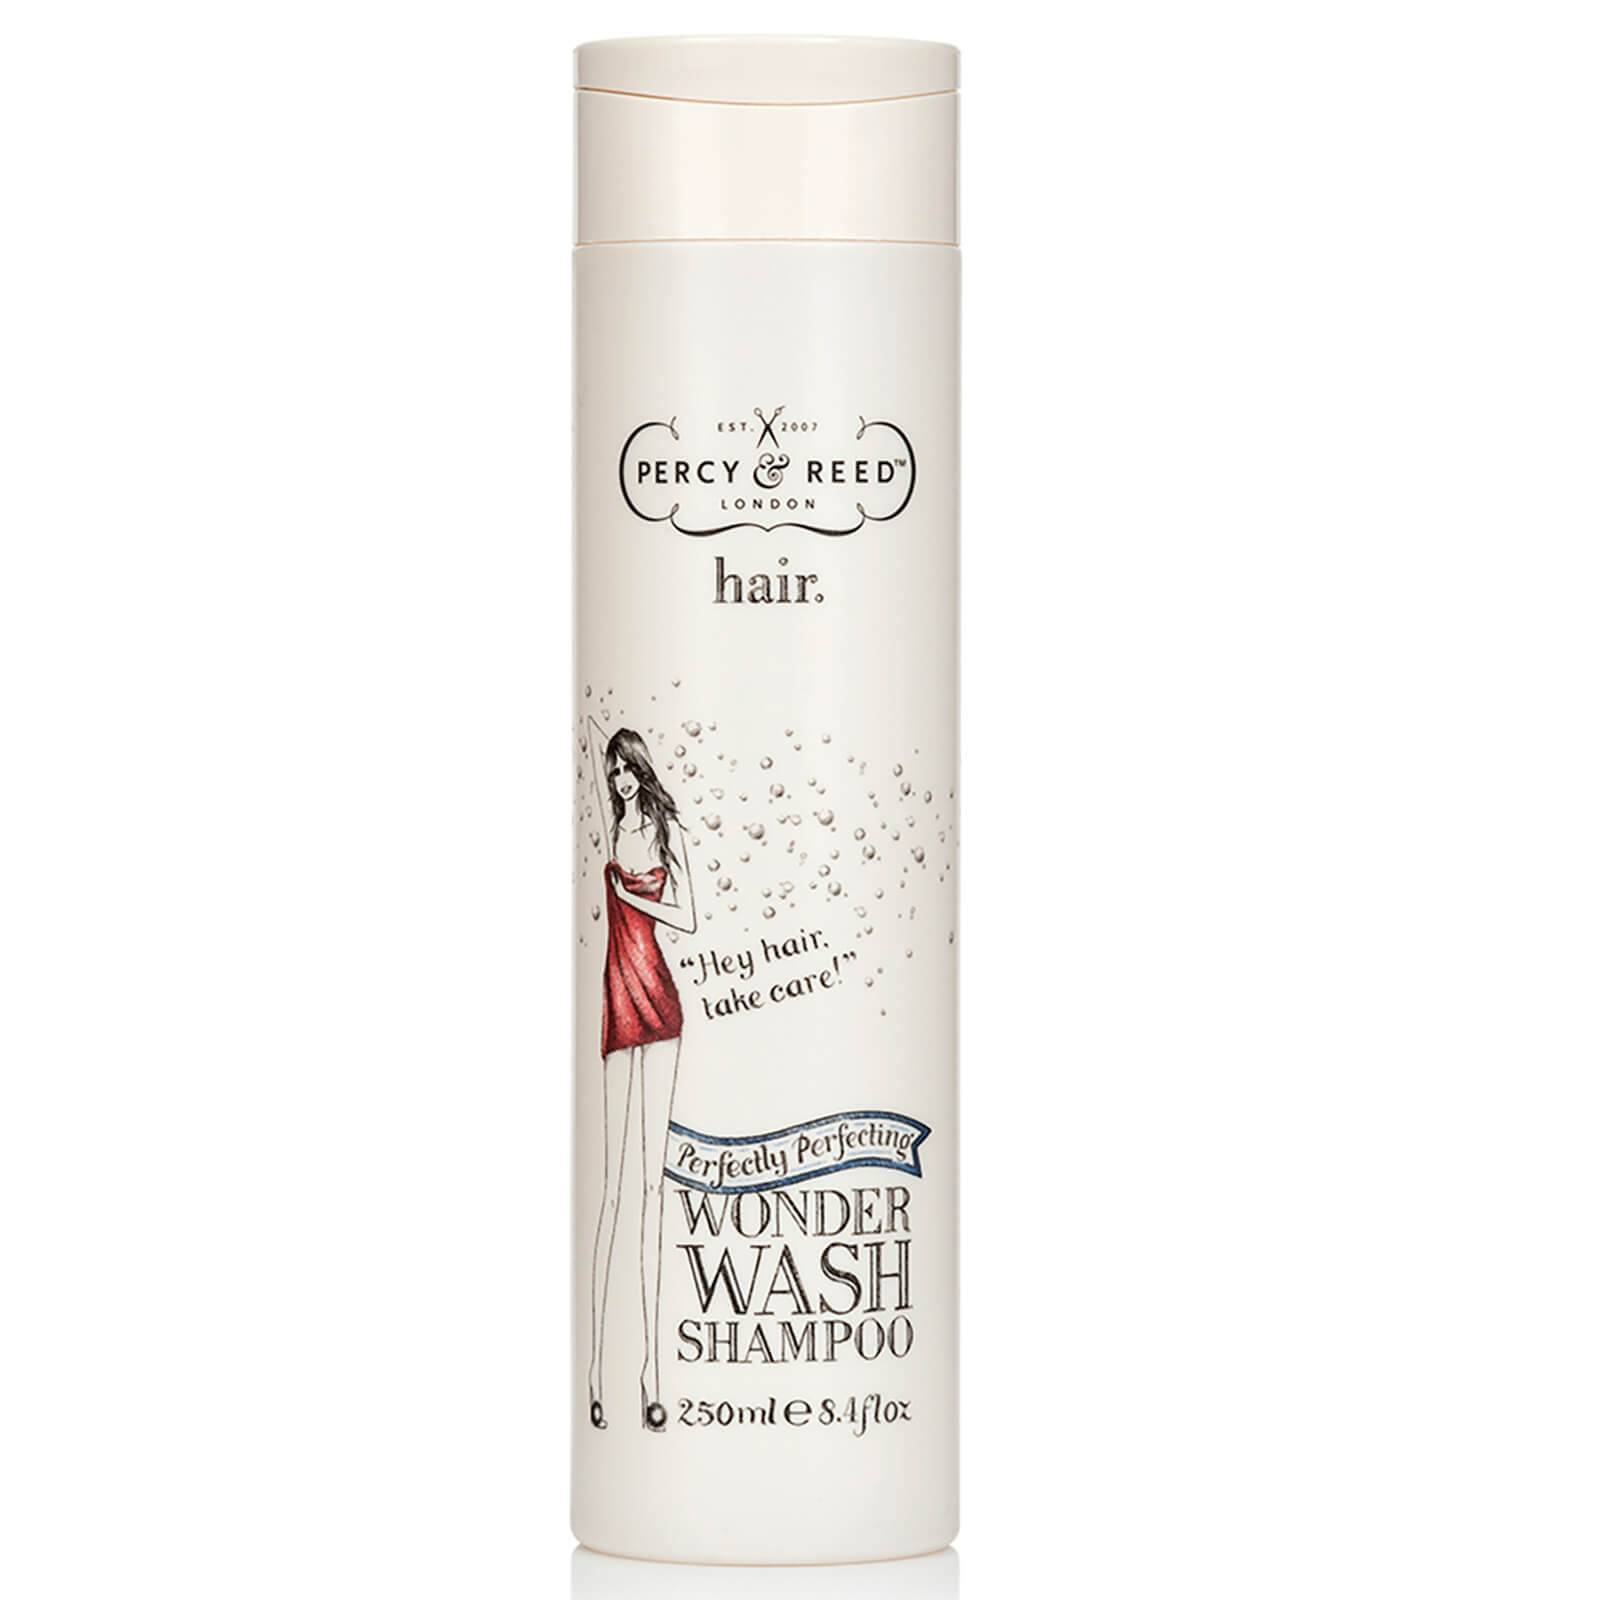 Percy & Reed Shampooing Wonder Wash Perfectly Perfecting Percy & Reed – 250 ml